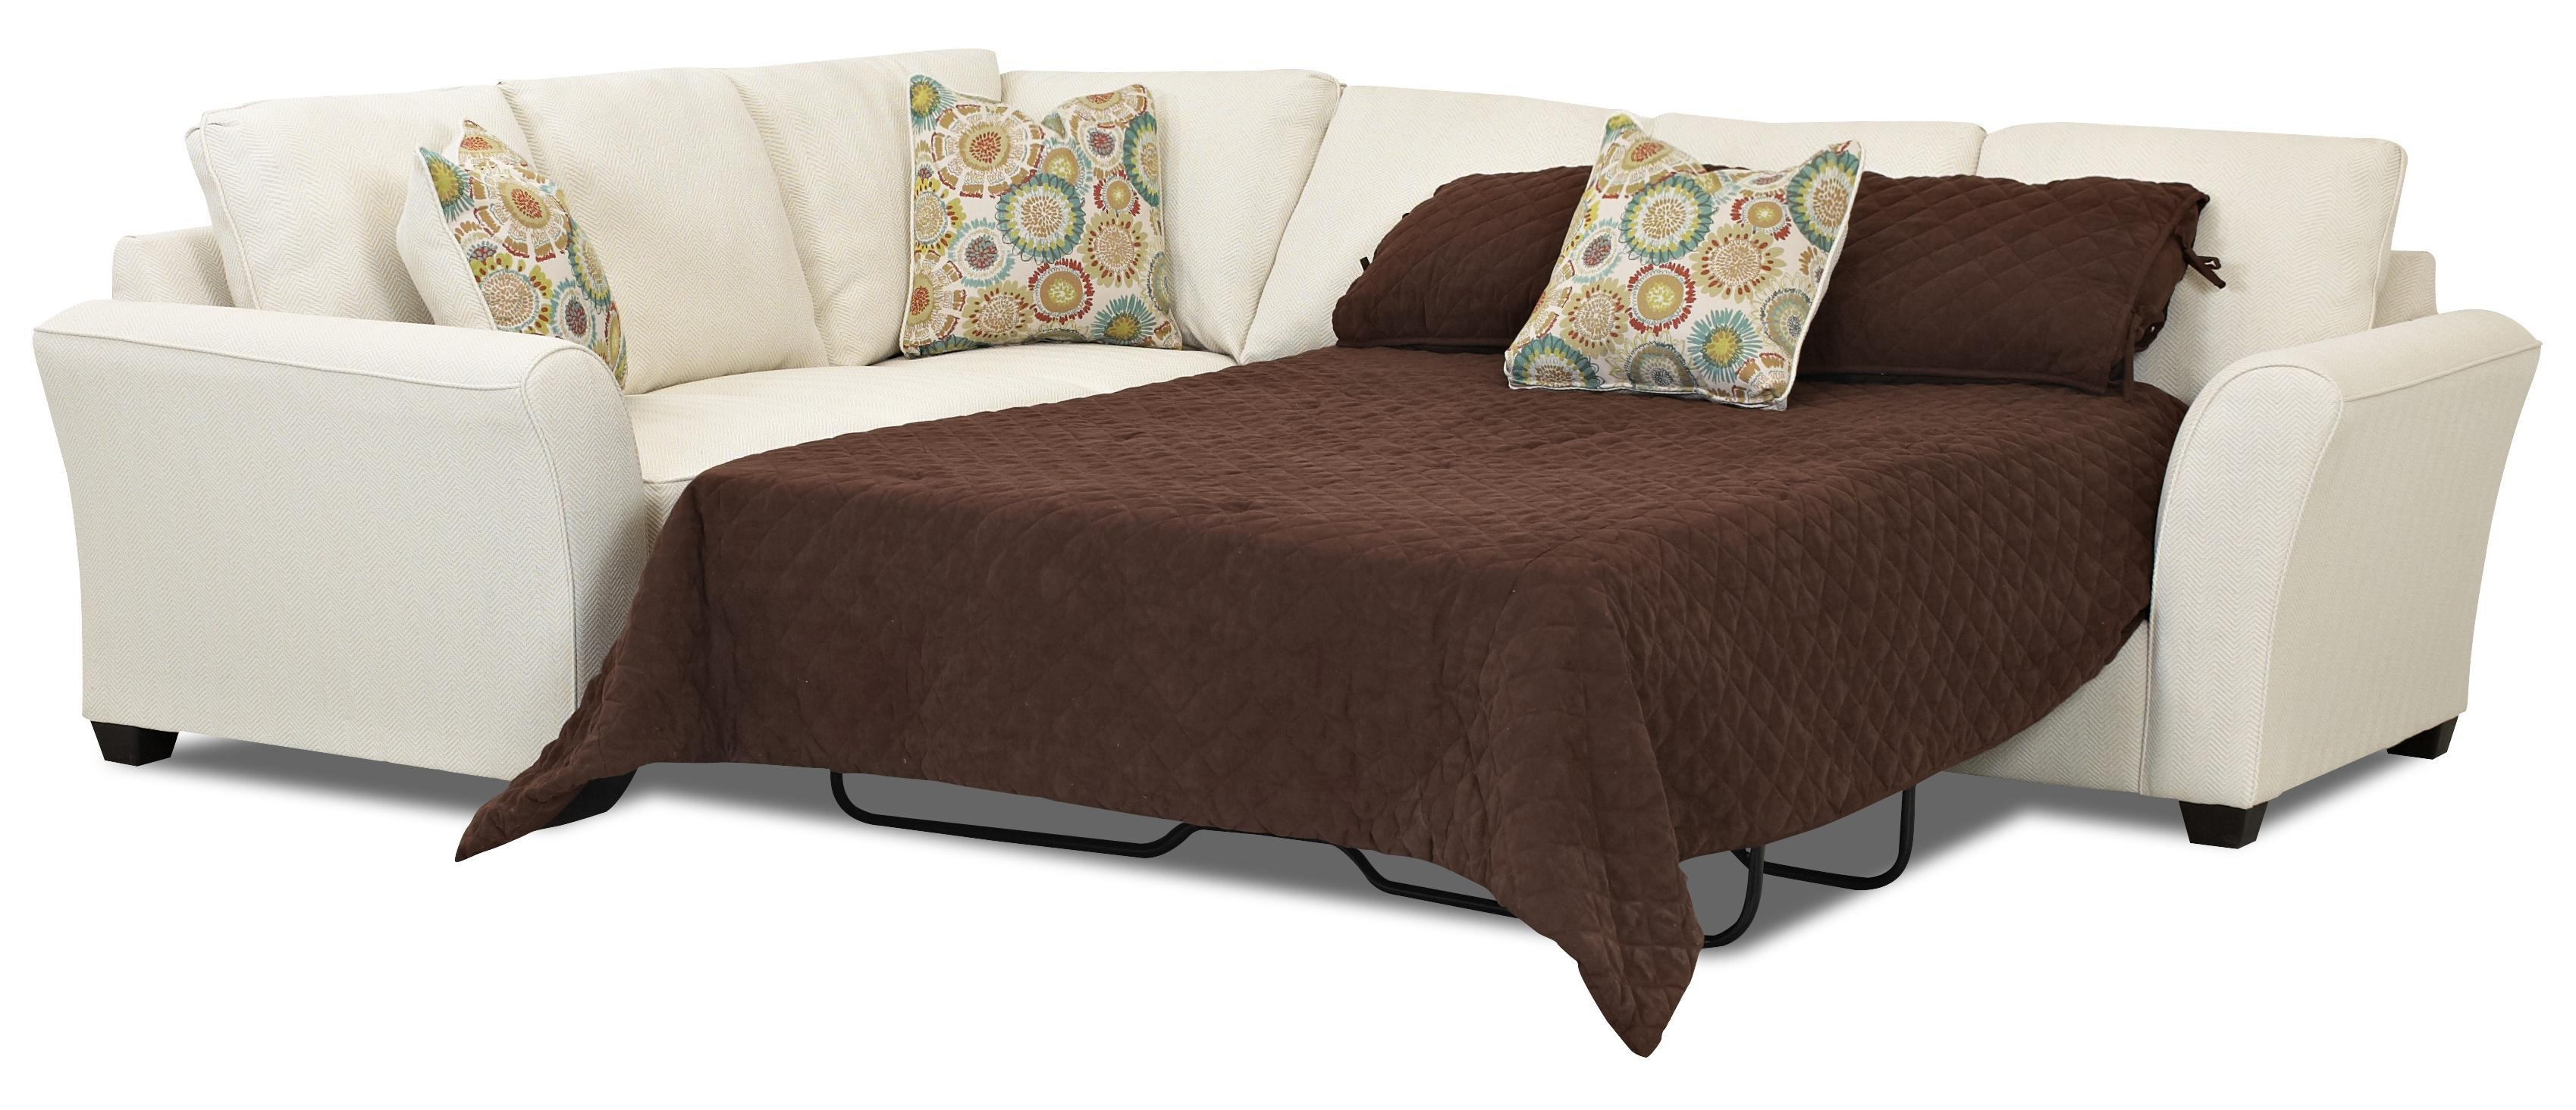 Transitional Sectional Sleeper Sofa With Dreamquest Mattress Within 3 Piece Sectional Sleeper Sofa (Image 14 of 15)